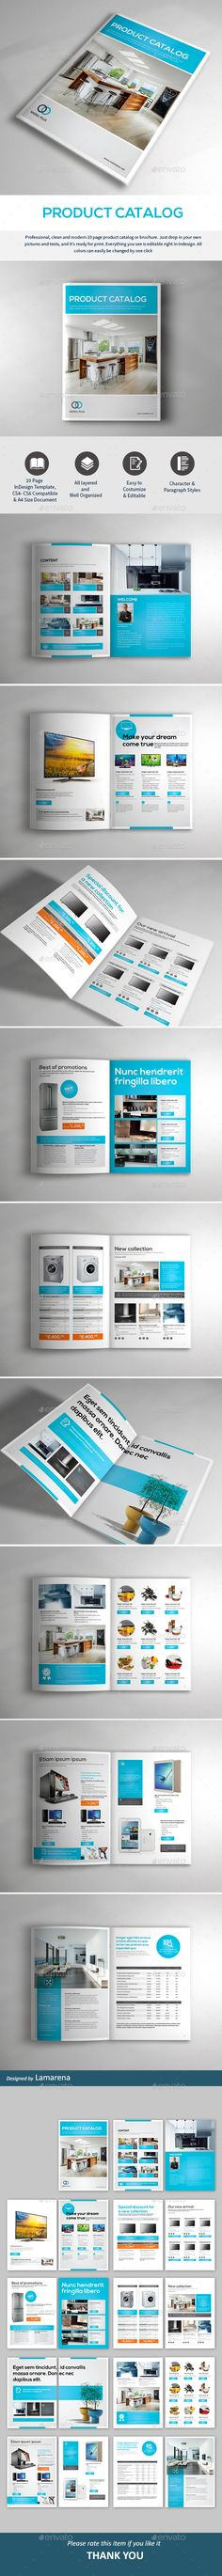 Product Catalog Product Brochure Product brochure